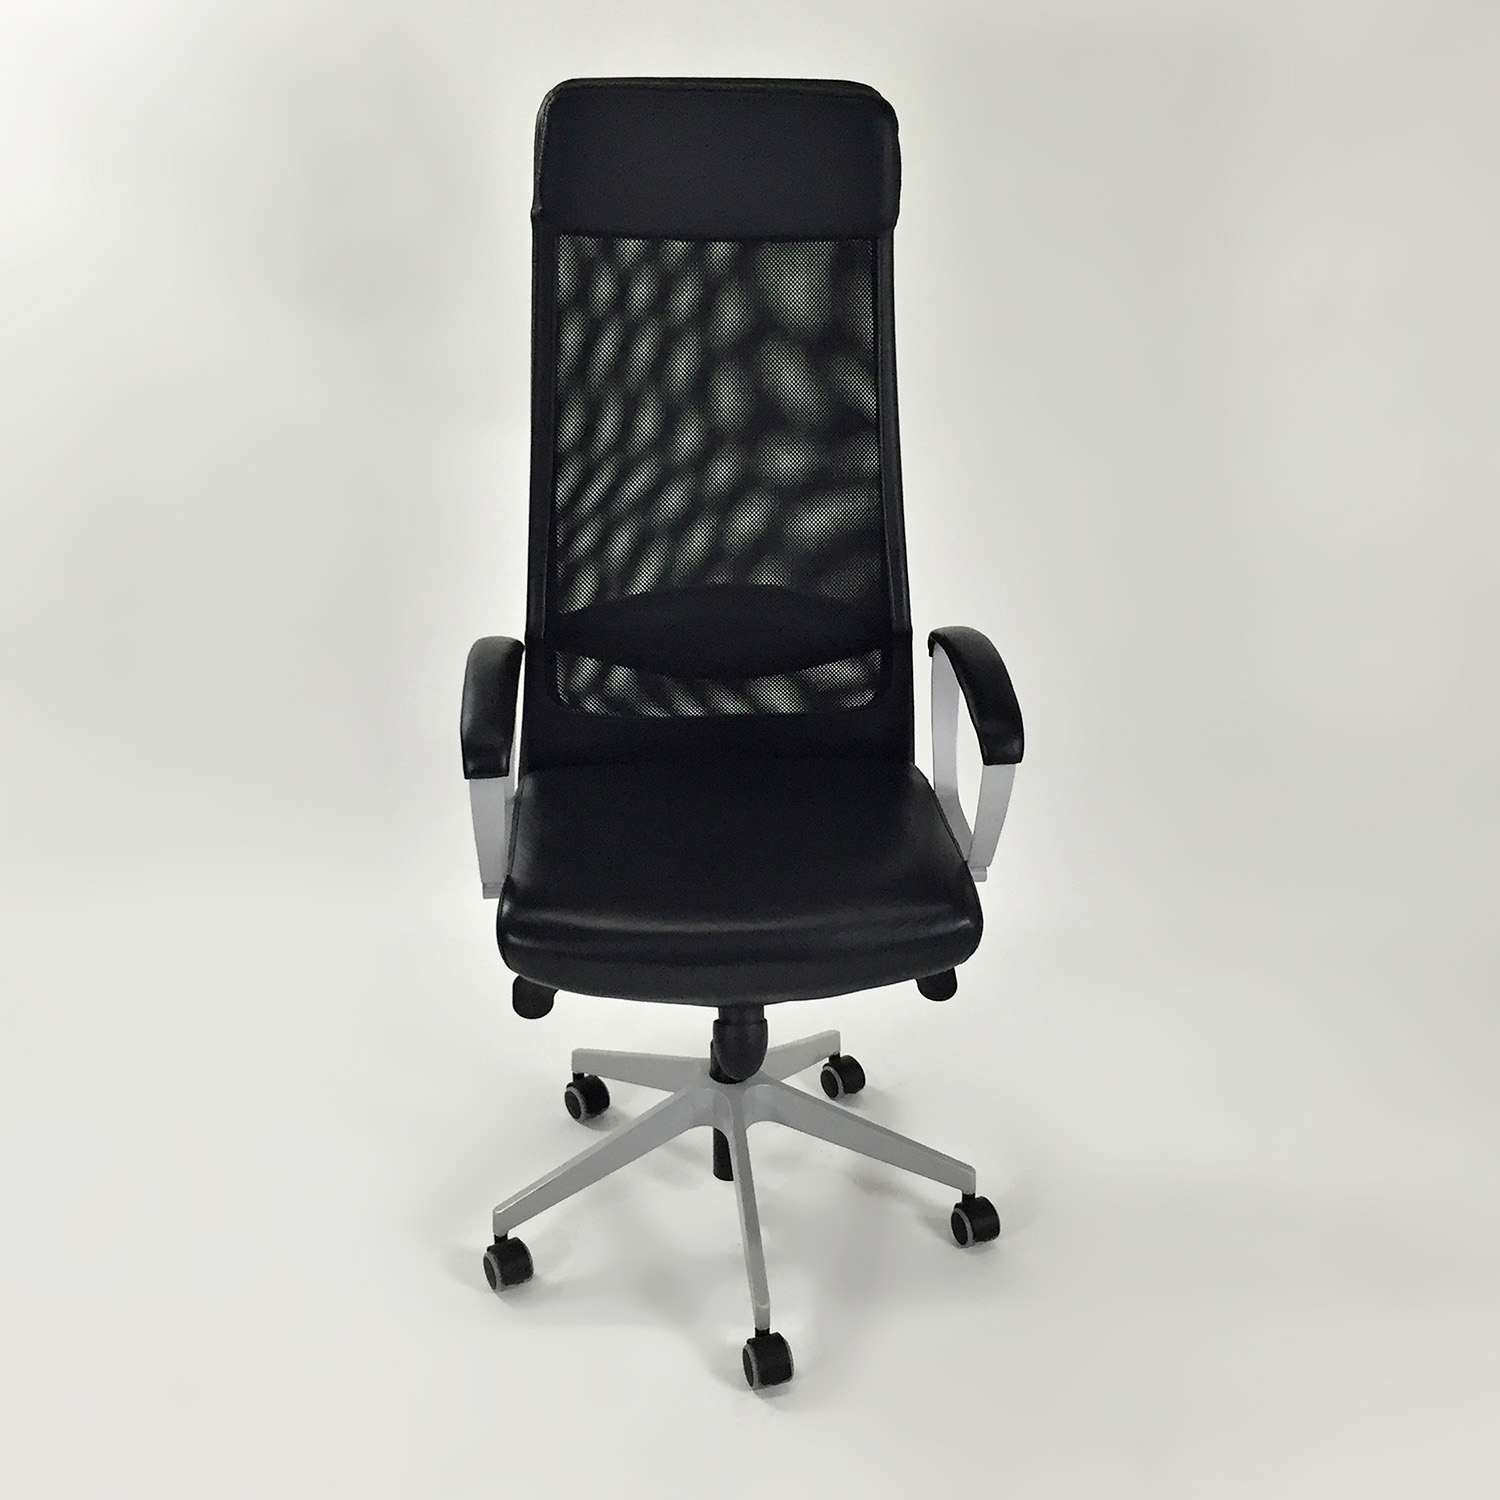 IKEA Markus Swivel Chair Price ...